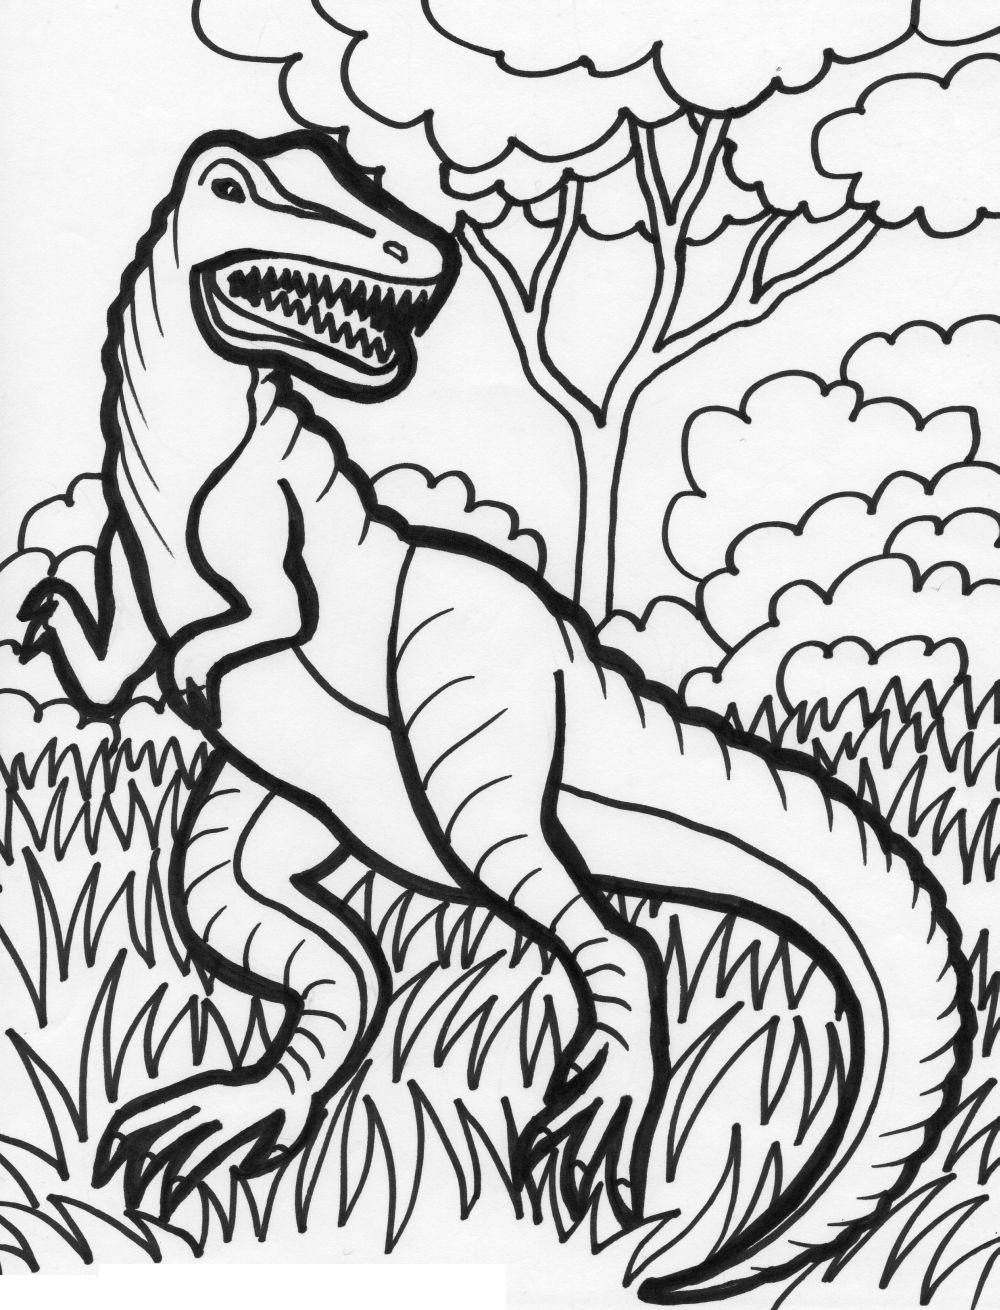 dinosaur colouring pages printable baby dinosaur coloring pages to download and print for free dinosaur colouring printable pages 1 1